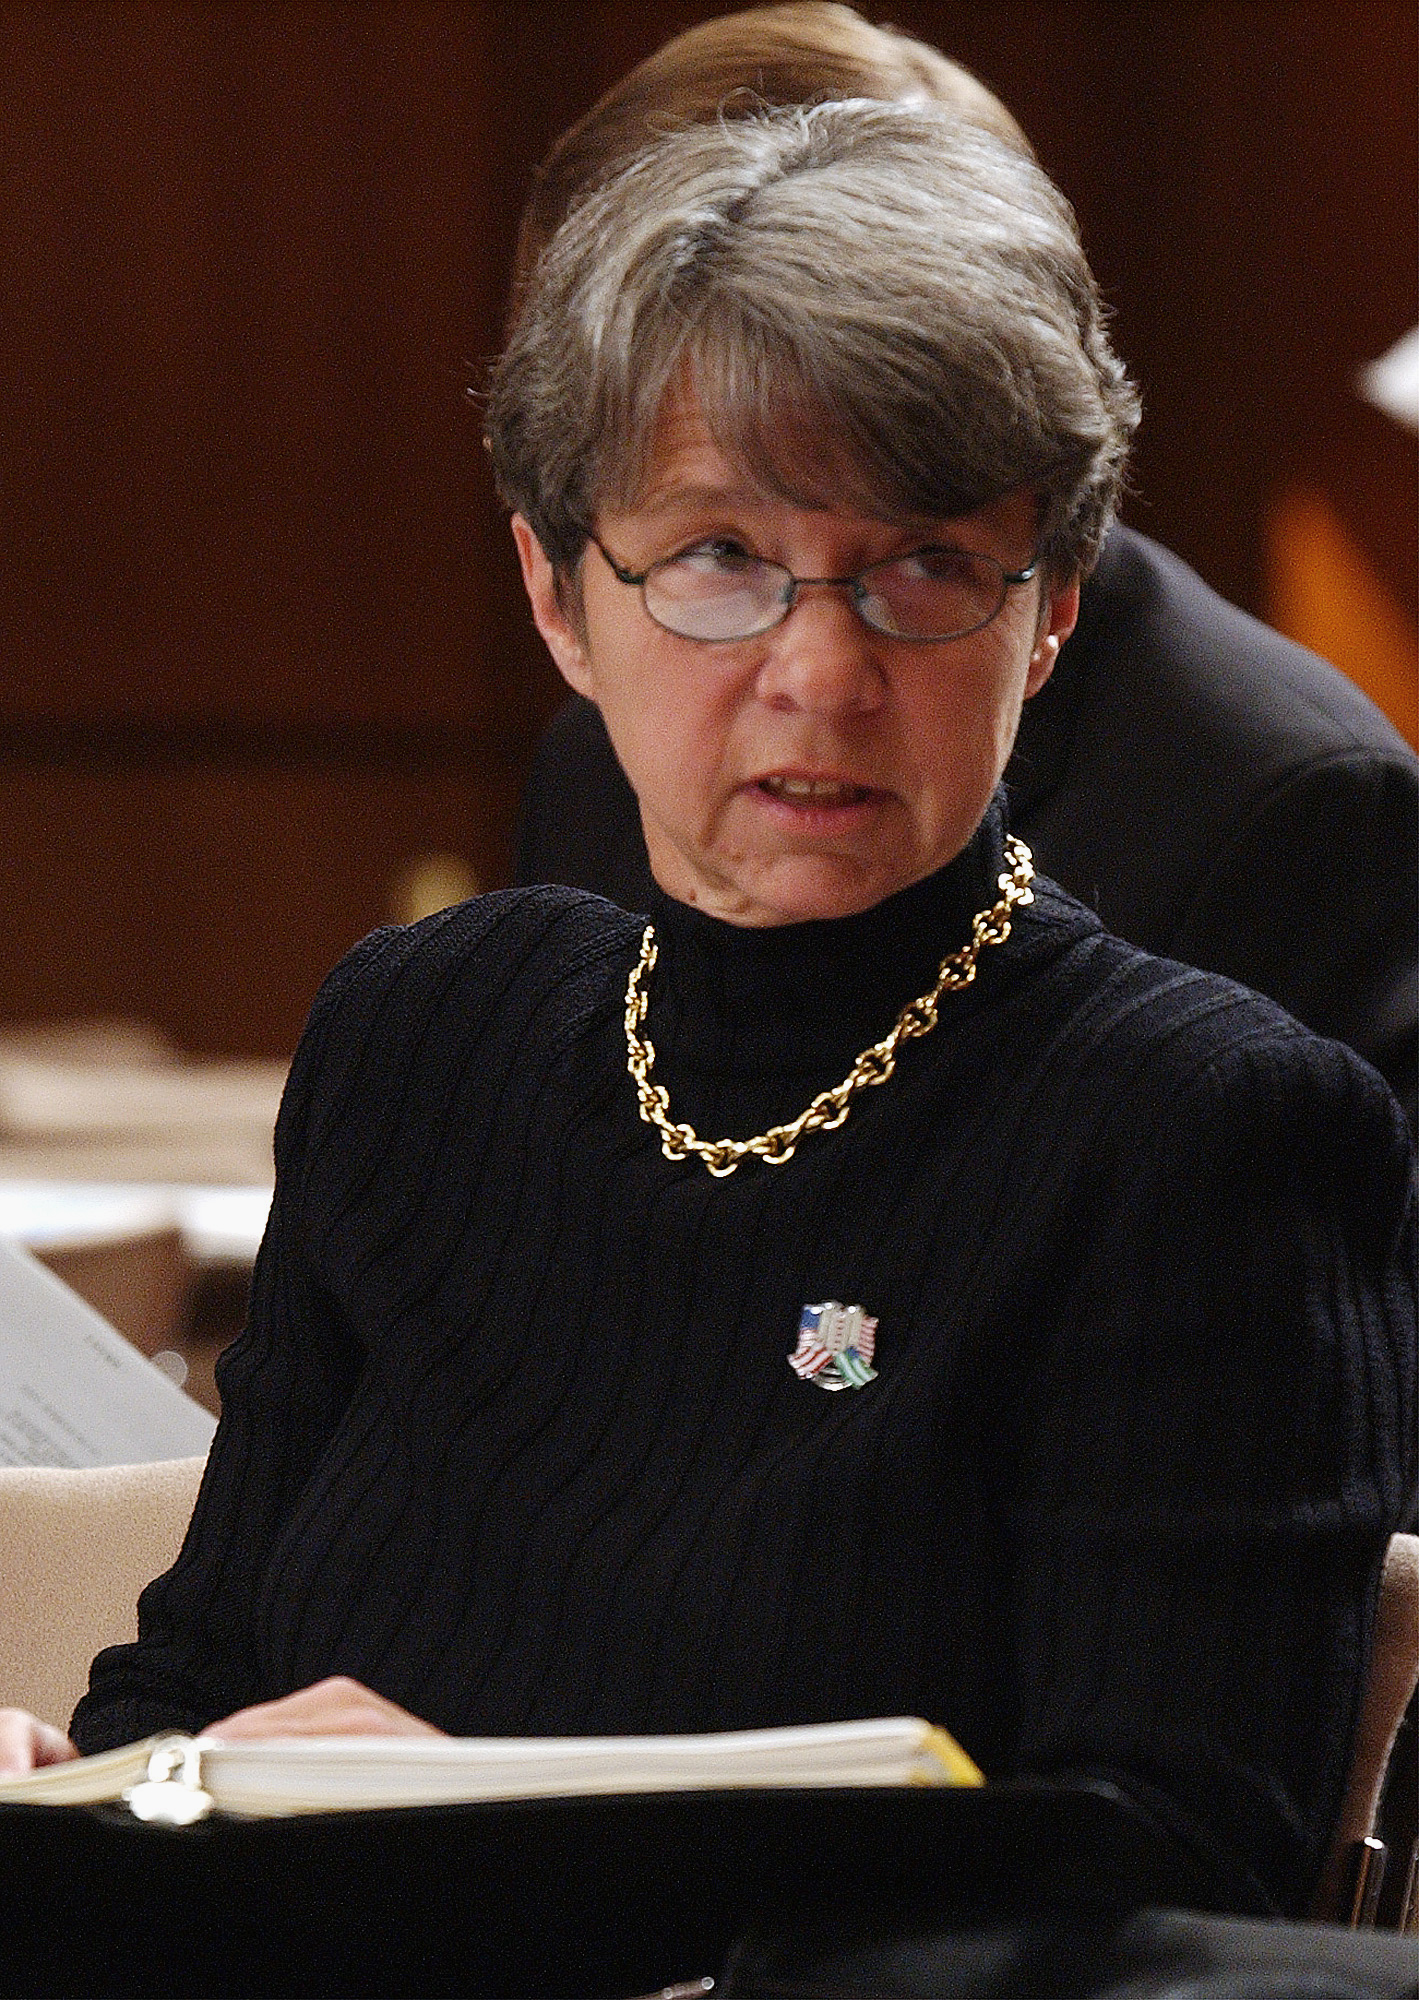 Mary Jo White, former U.S. Attorney for the Southern District of New York, appearing on Capitol Hill in 2002 (Dennis Cook/AP)